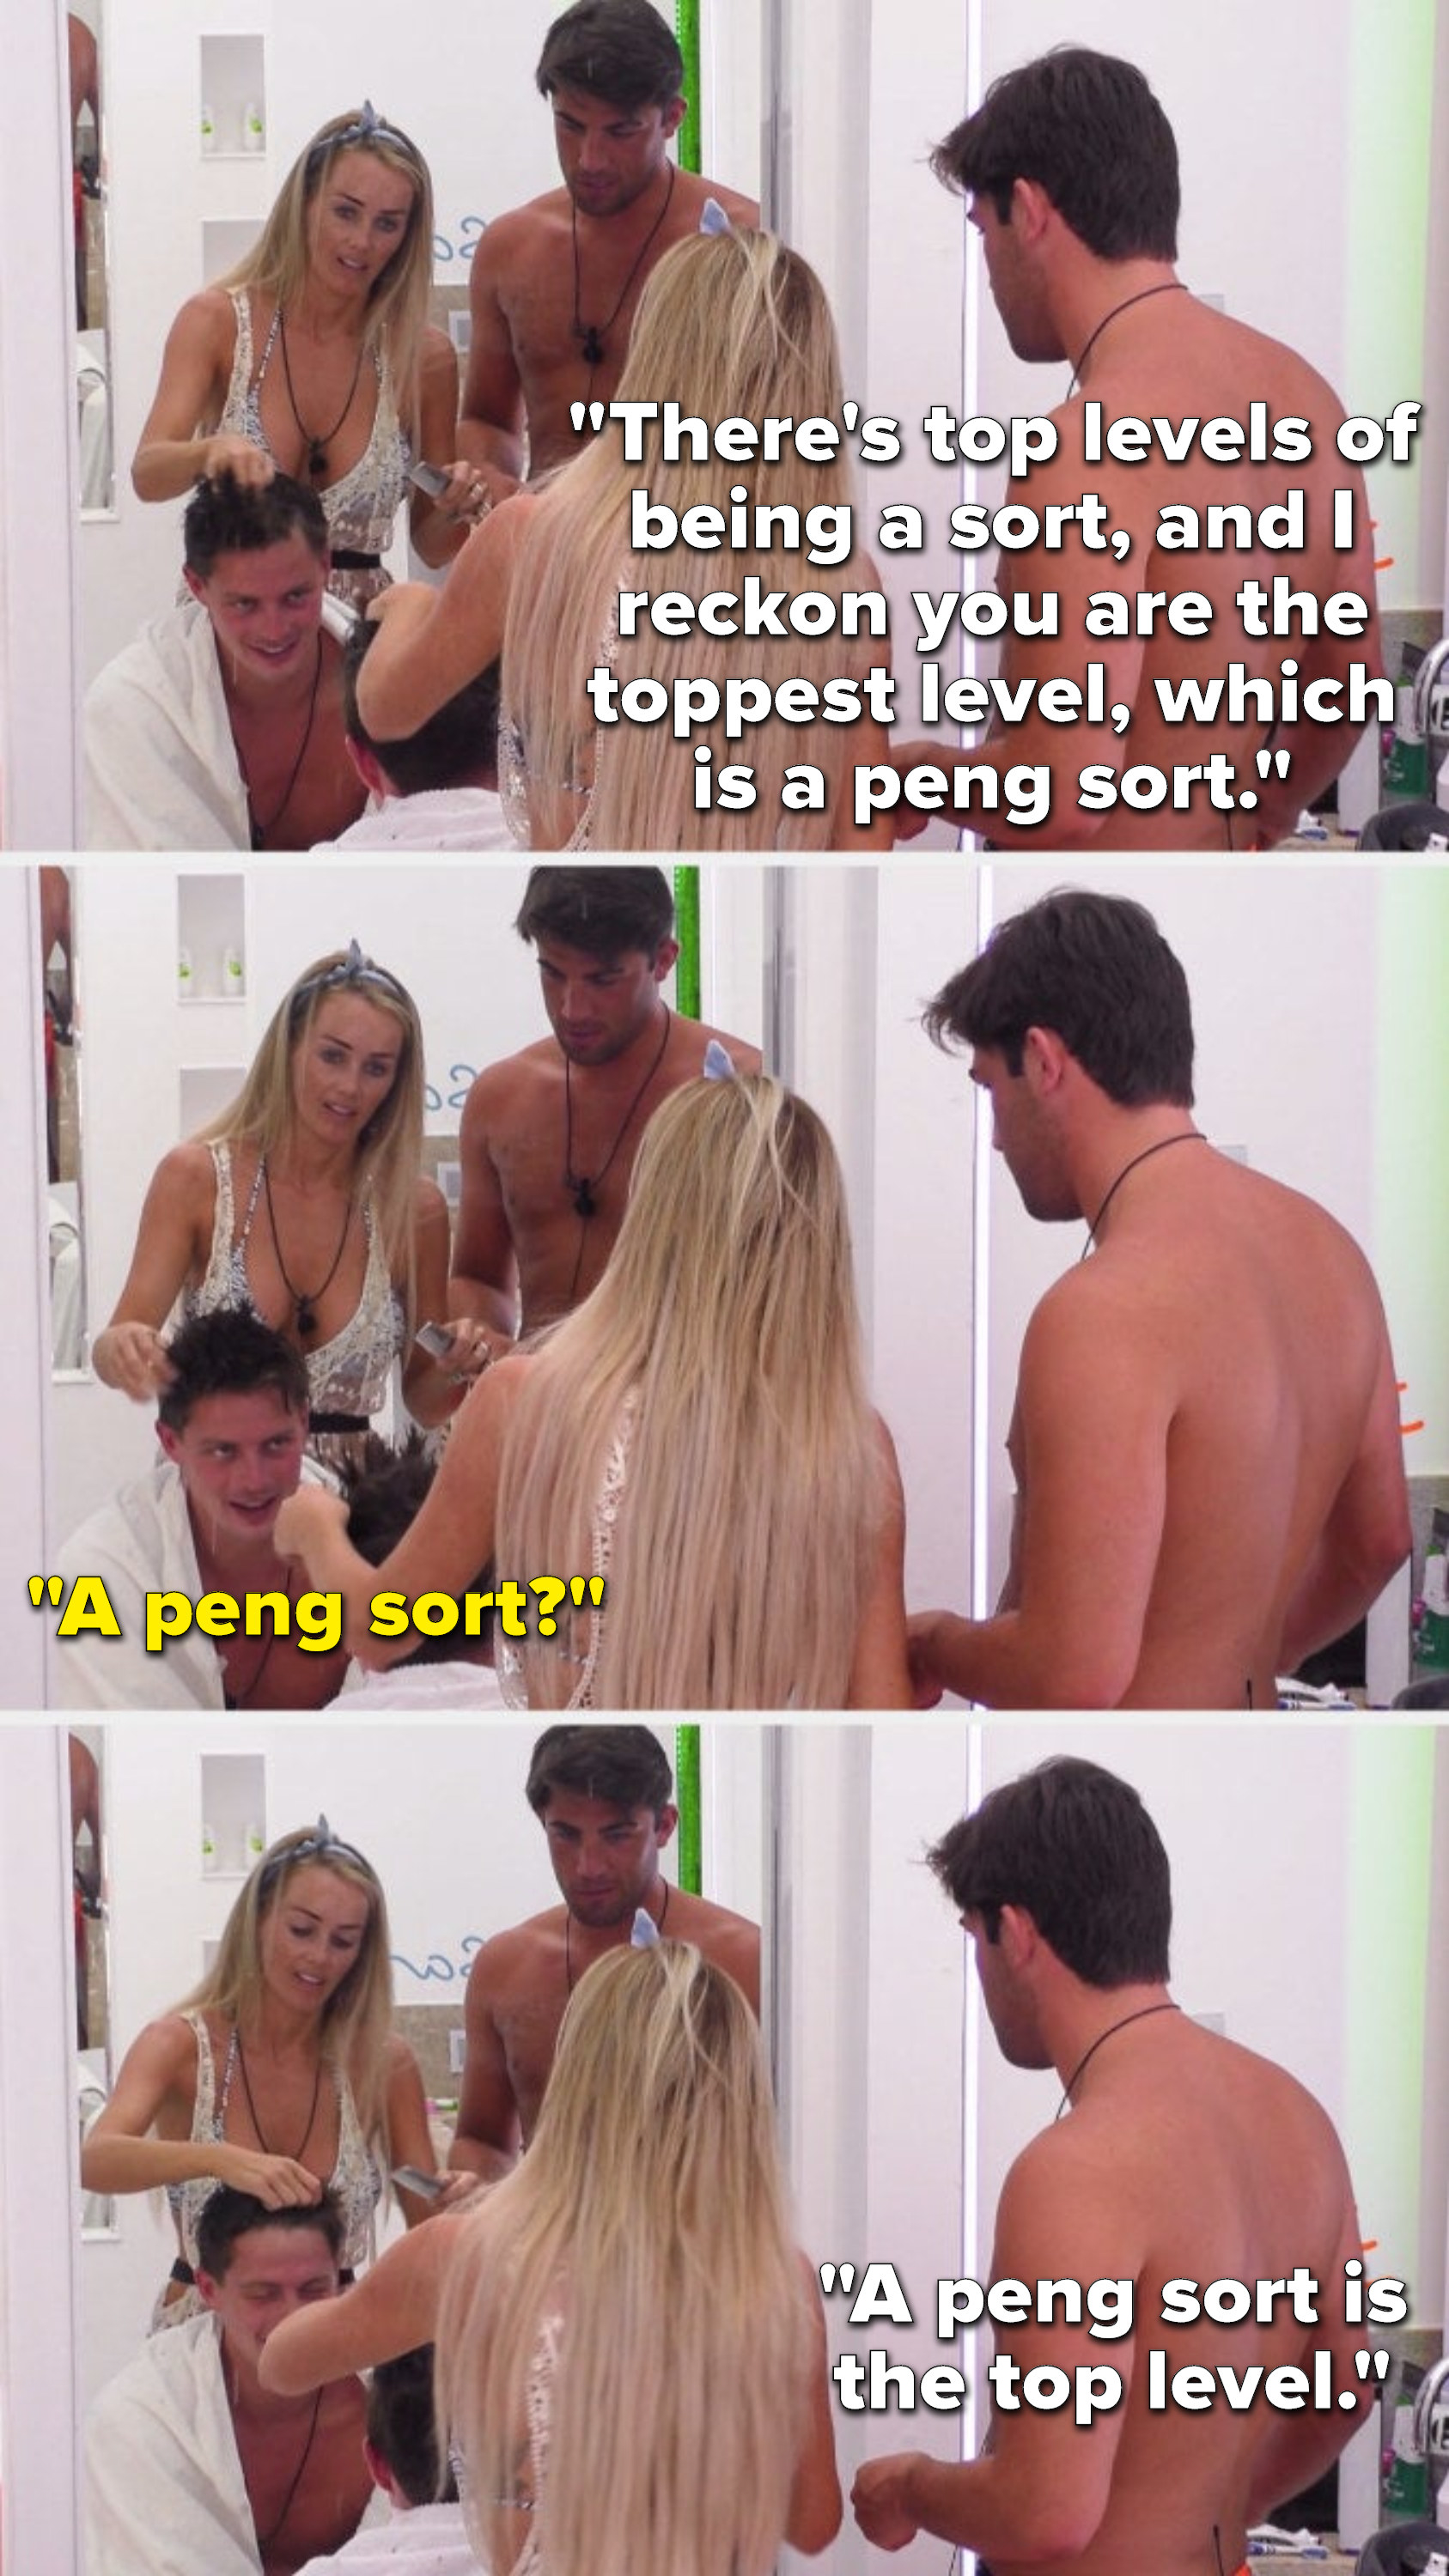 """Jack says, """"There's top levels of being a sort, and I reckon you are the toppest level, which is a peng sort,"""" Alex asks, """"A peng sort,"""" and Jack says """"A peng sort is the top level."""""""